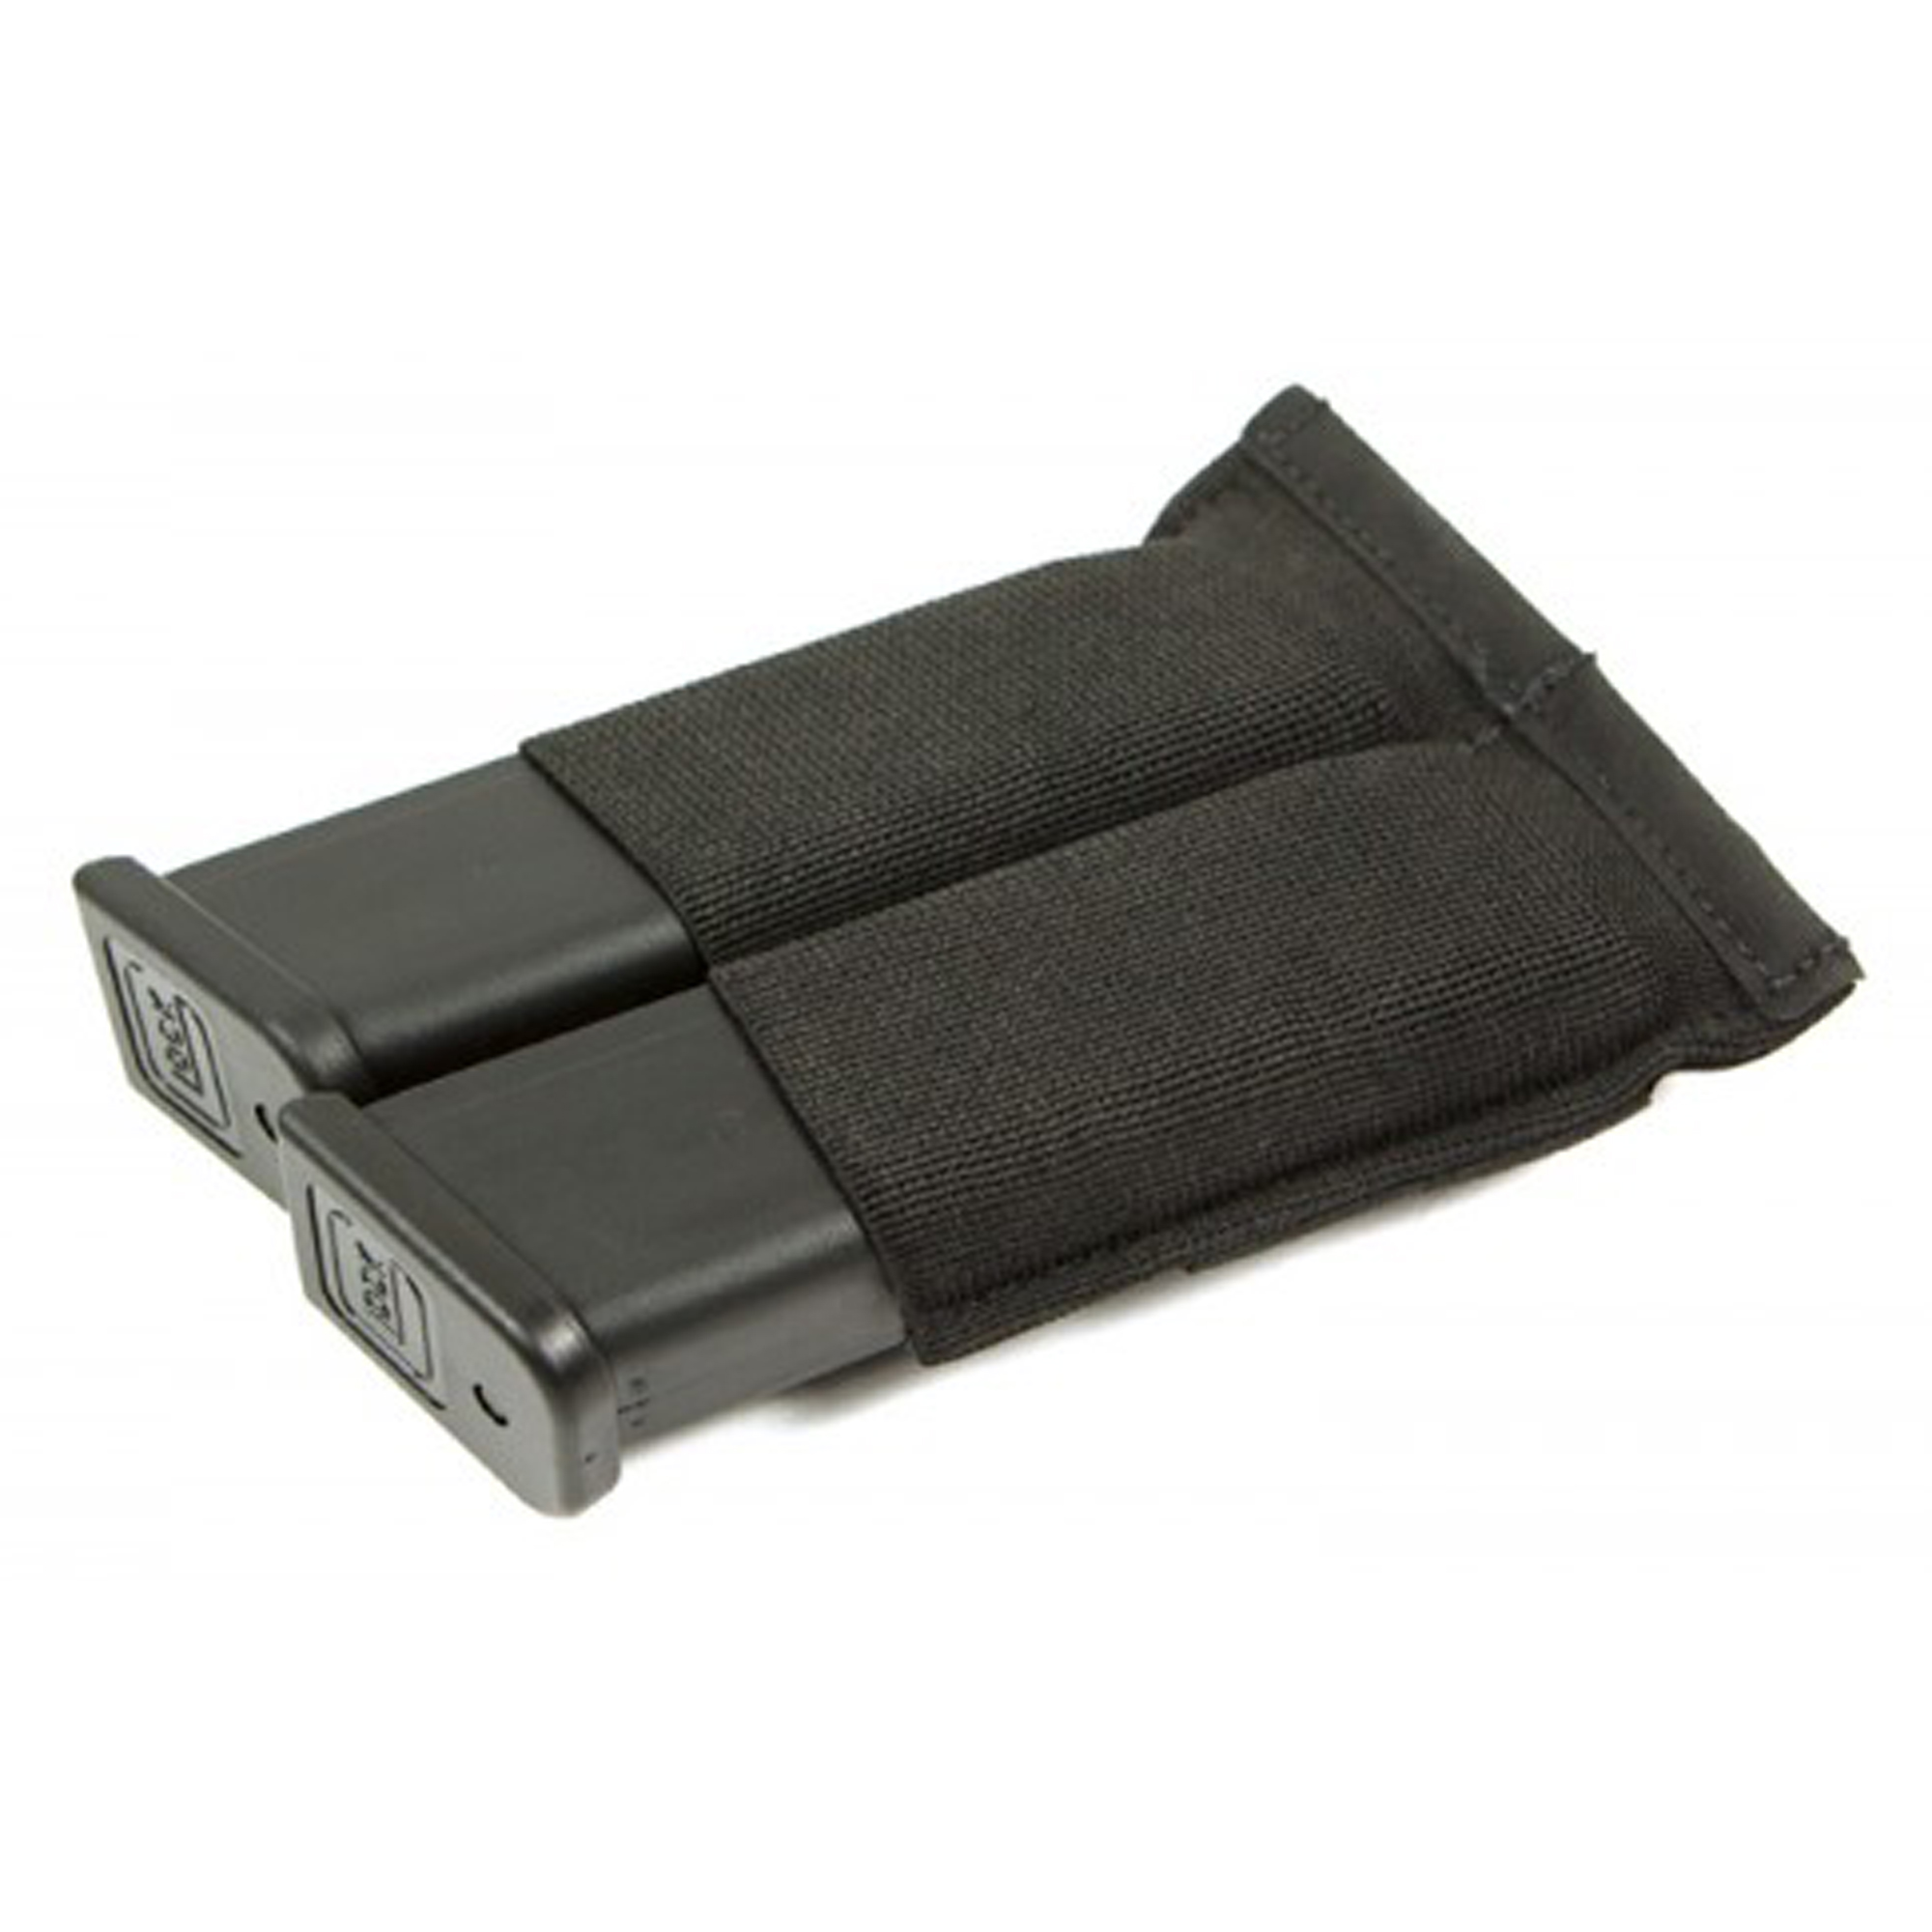 """The Ten-Speed Double Pistol Mag Pouch holds two single or double stack magazine and is the perfect blend of speed and security. Ten-Speed(R) pouches use military grade elastic combined with ULTRAcomp to create a multiuse pouch that is weighs almost nothing and lays flat when not in use. The Double Pistol Mag Pouch holds two single or double stack pistol magazine up to an HK 45"""" multi-tool"""" light"""" knives"""" small OC spray"""" or other similar sized items."""